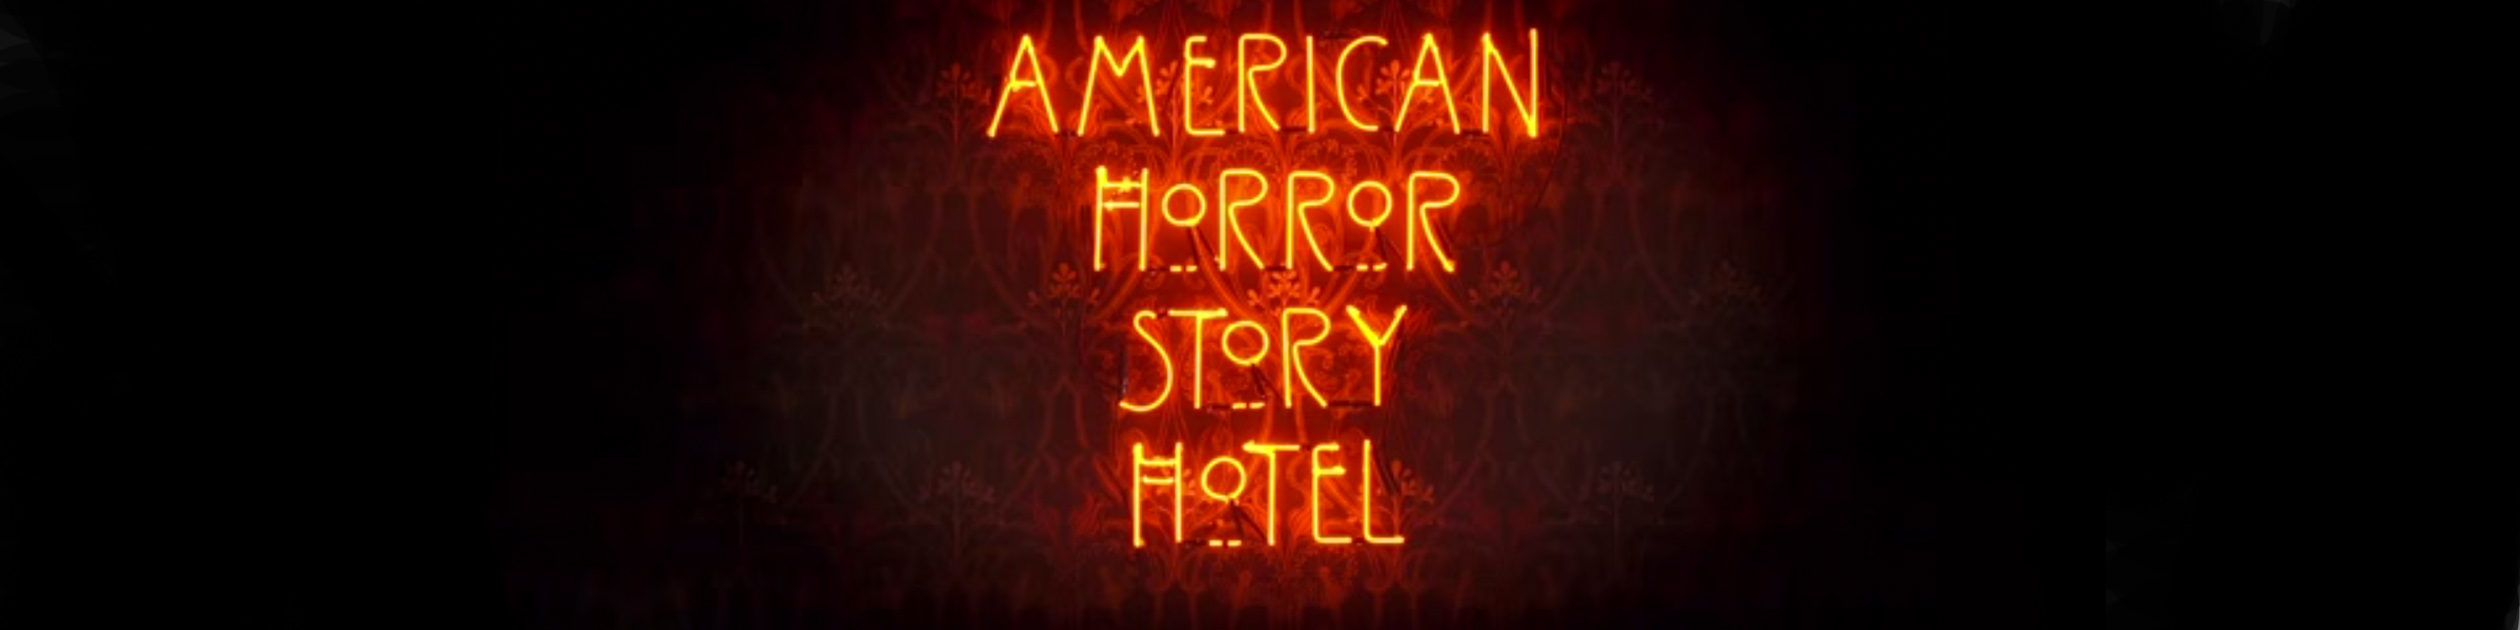 American Horror Story Hotel – Review